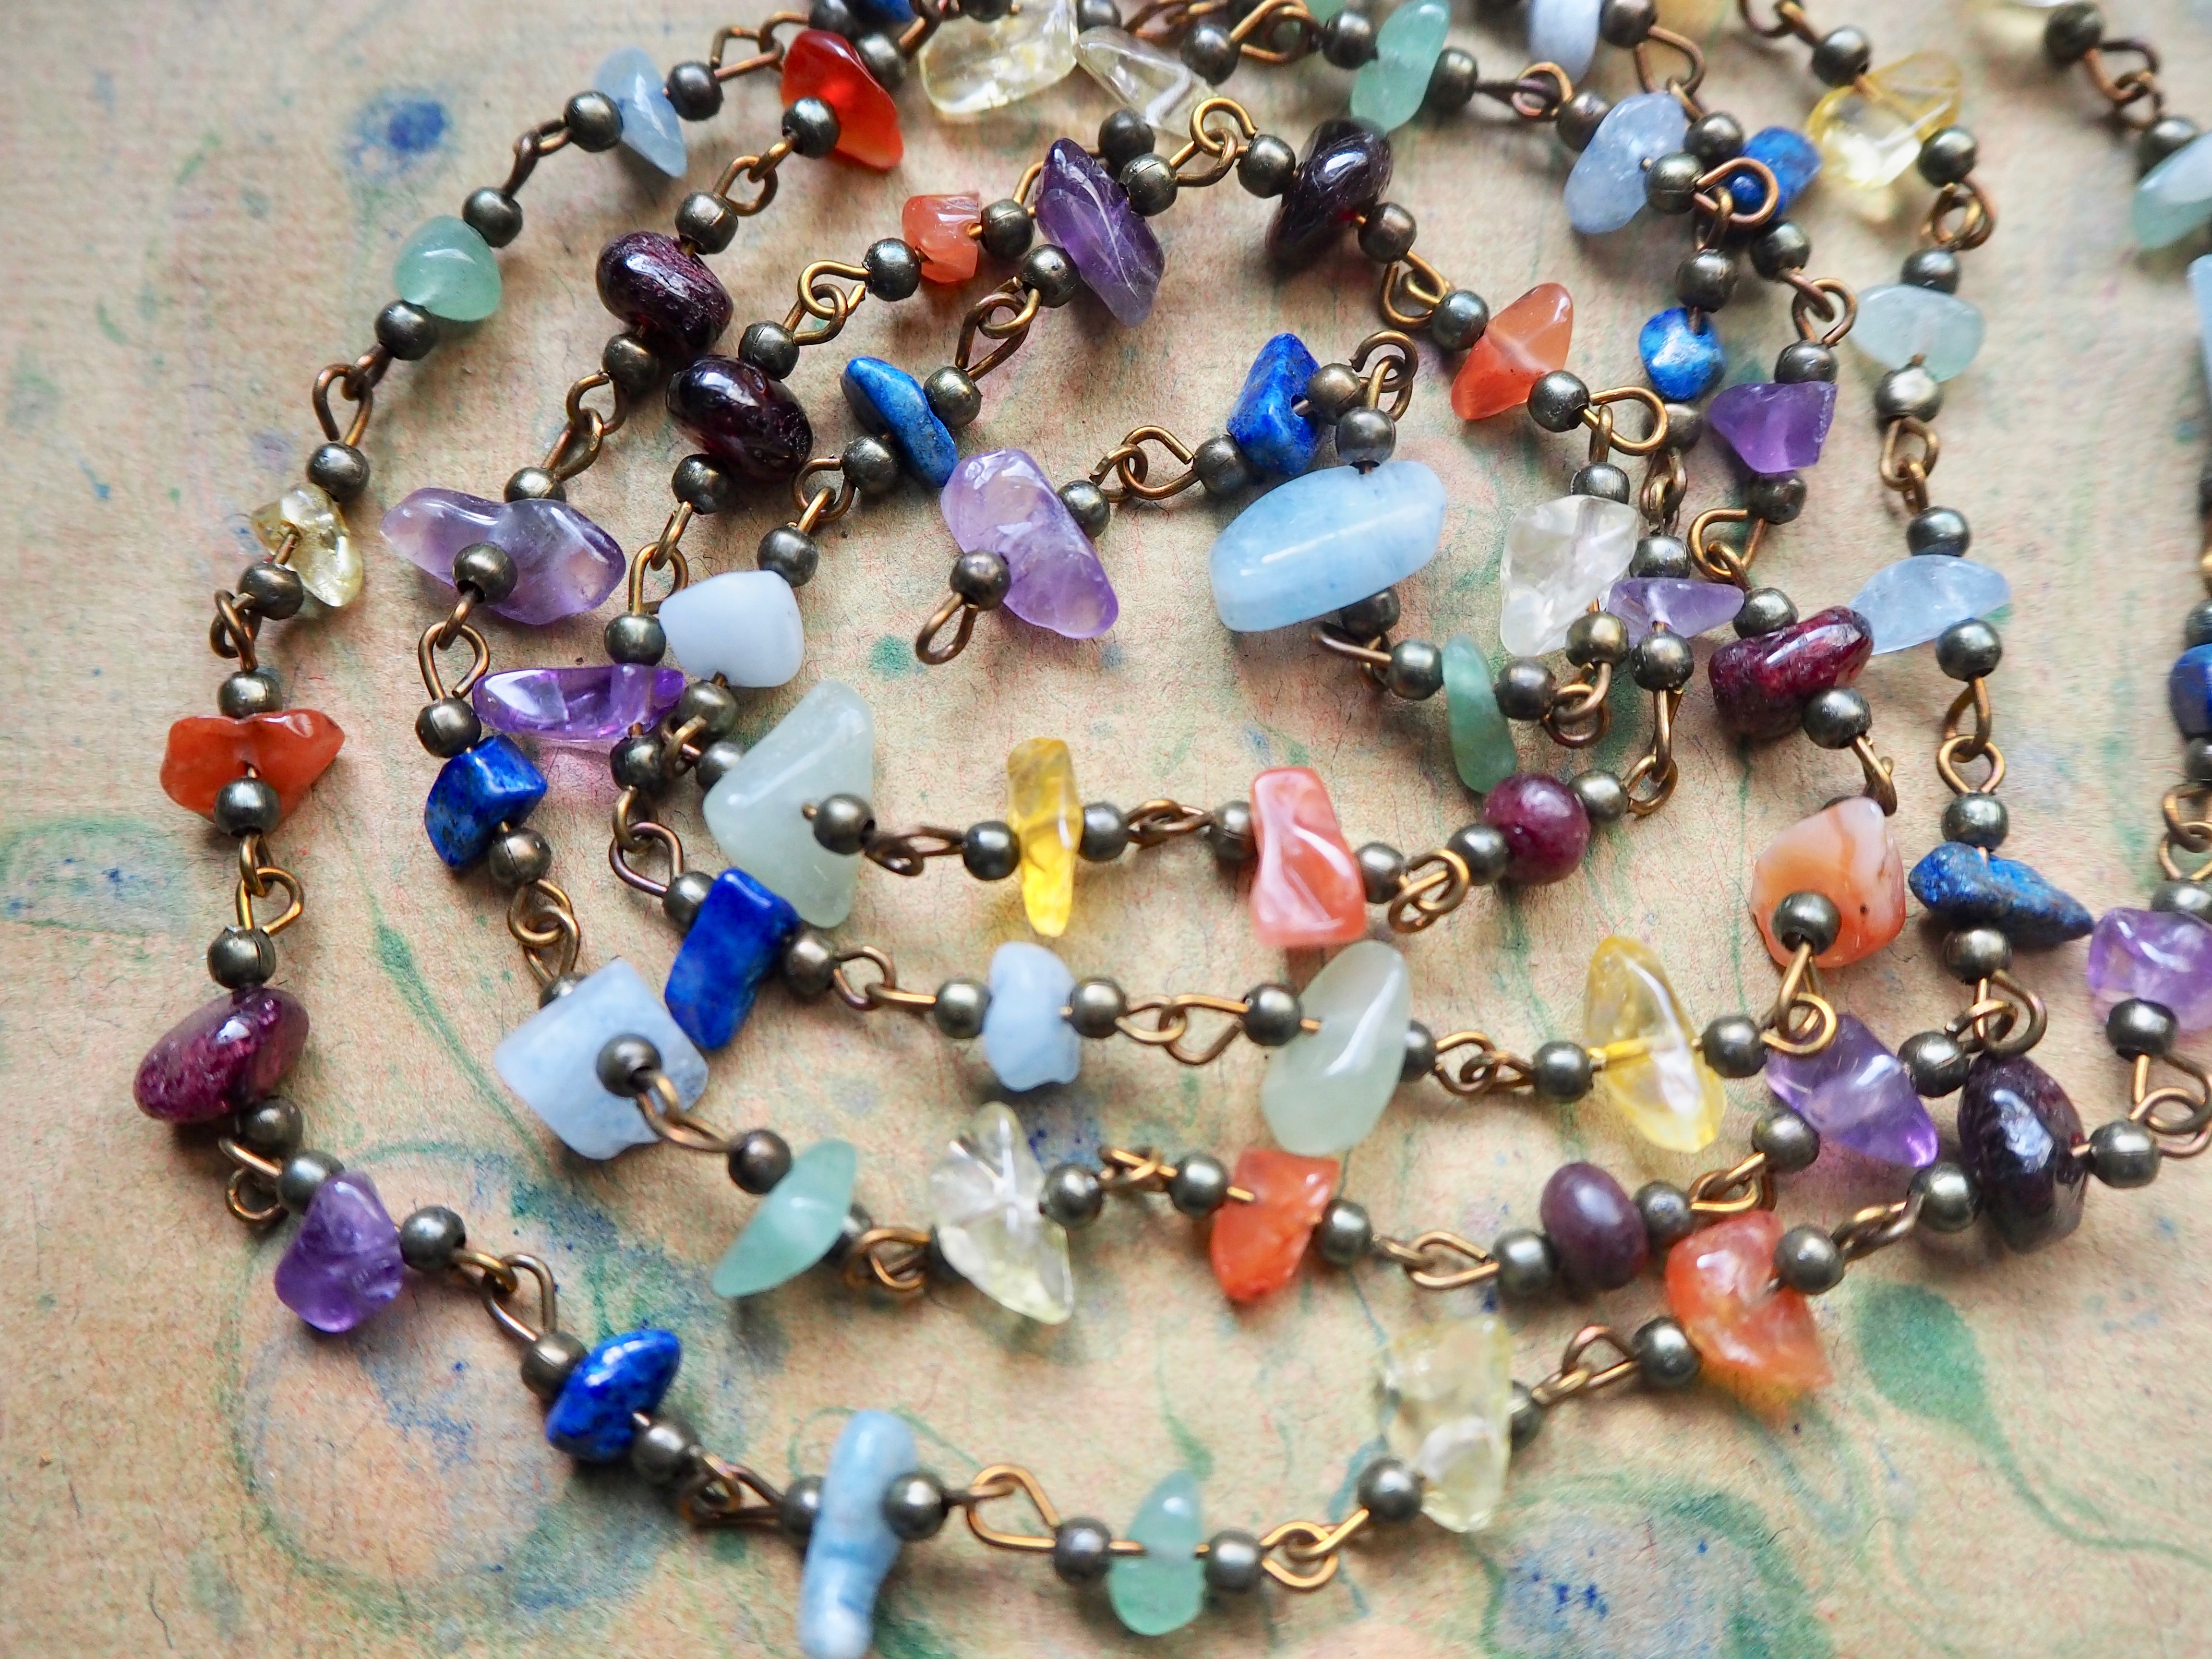 ONE METER Chakra Handmade Gemstone Chip Beads Rosary Chain with Antique Bronze Links